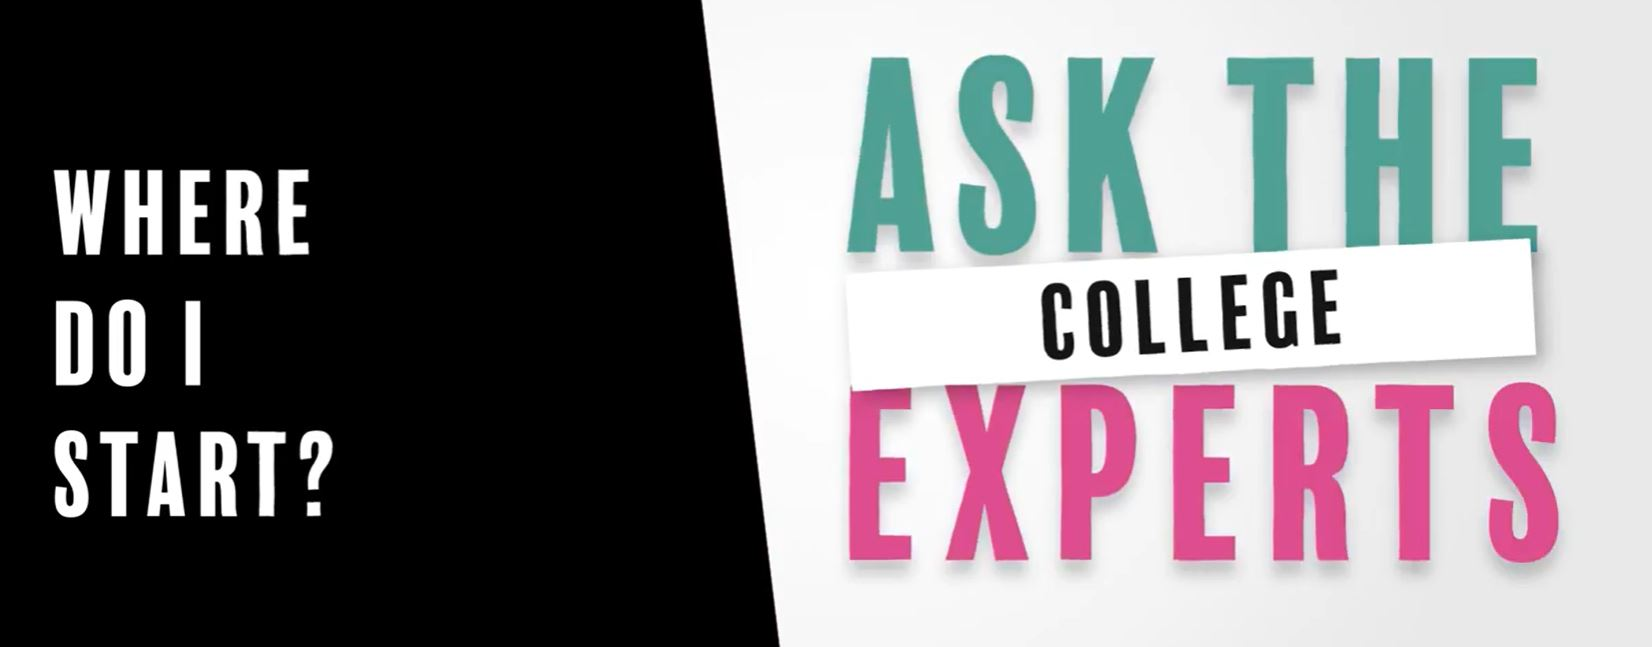 Ask the Experts: A Homegrown Video Campaign